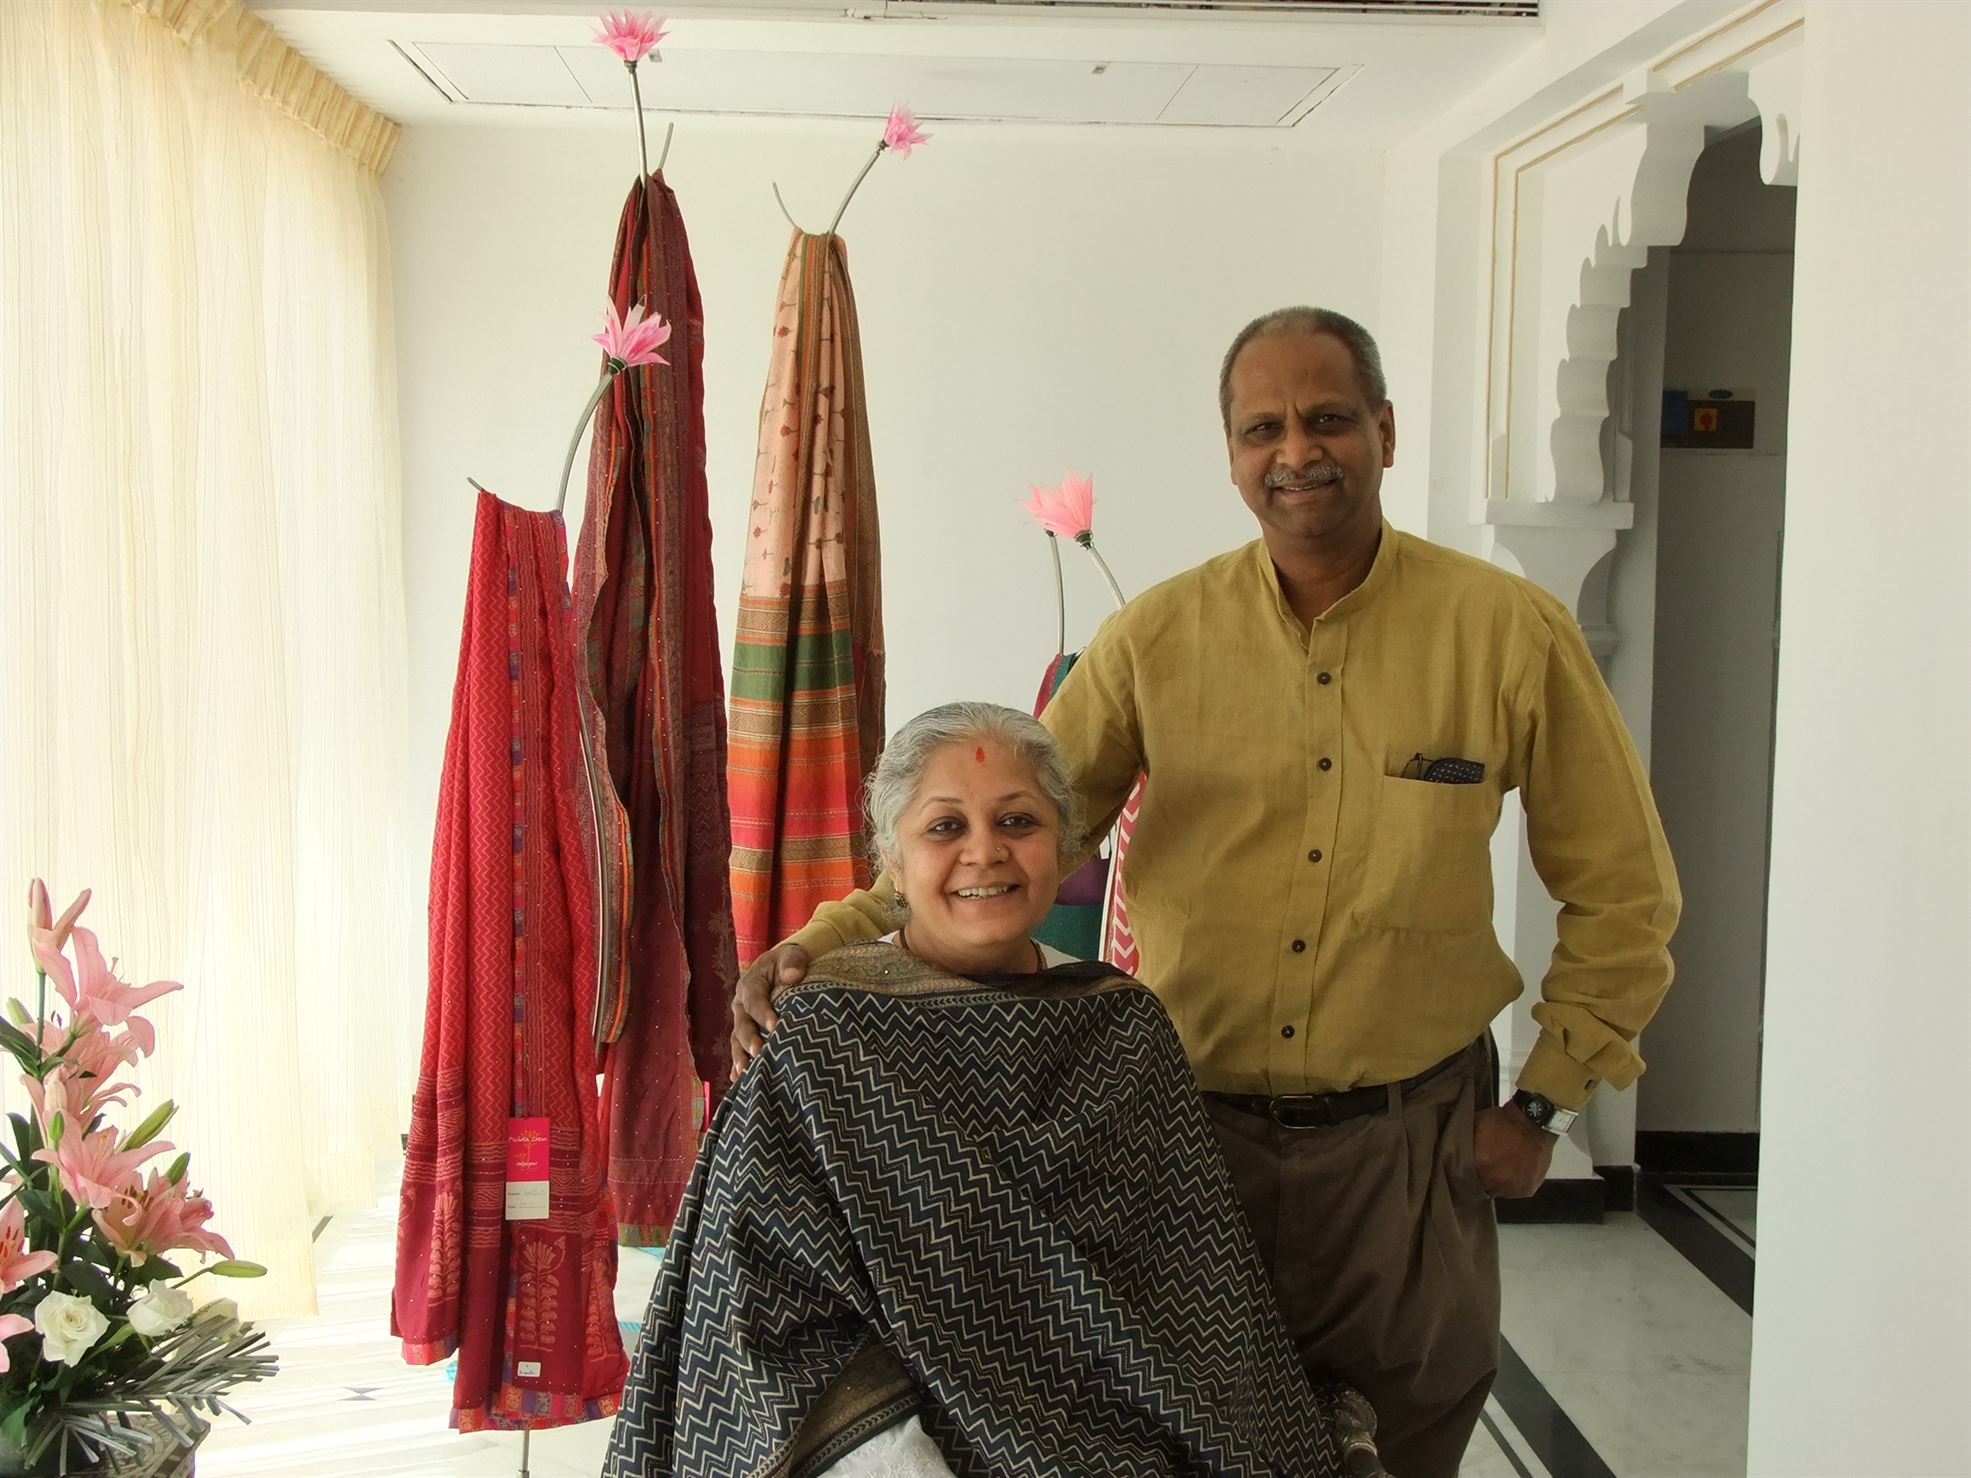 Mala Sinha and Pradeep Sinha - Founders of Bodhi that works on truly sustainable business model in Vadodara